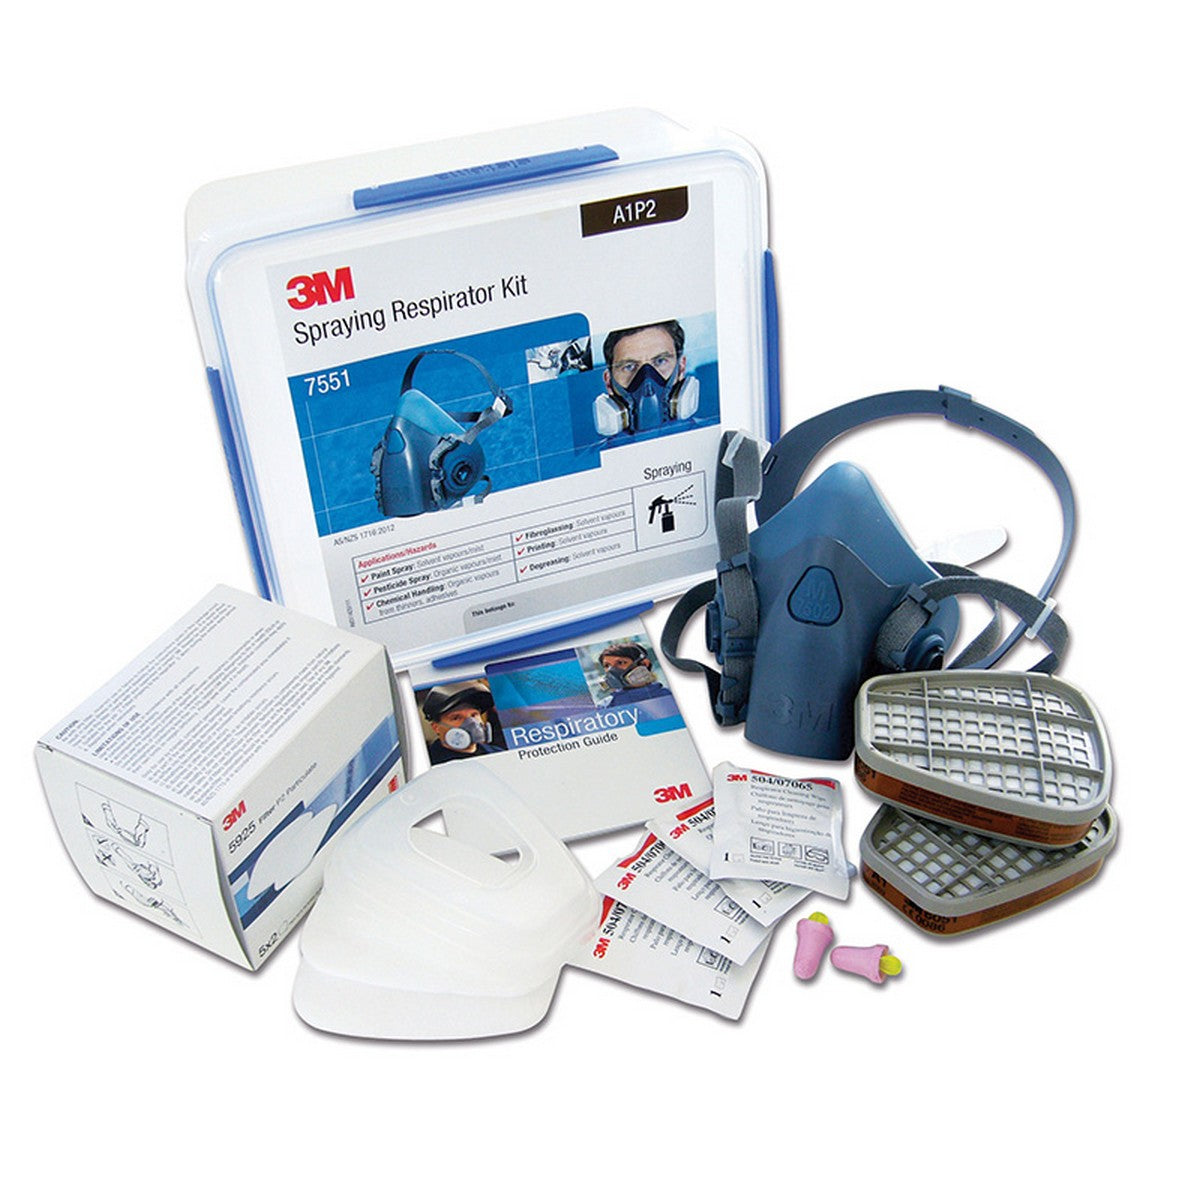 Image of 3M7551 SPRAYING KIT